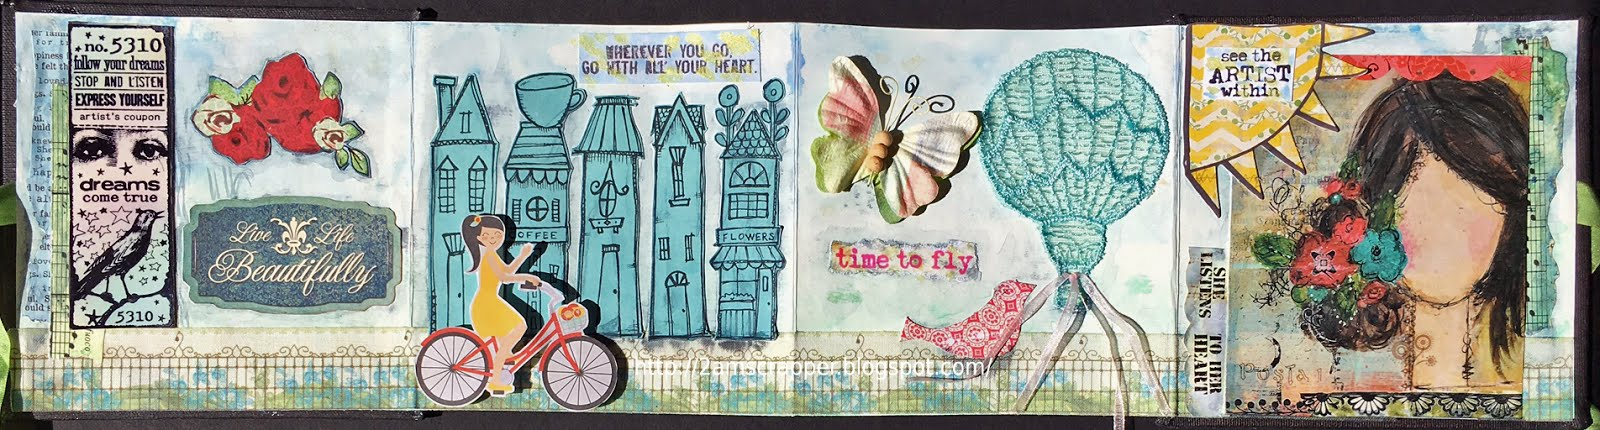 for May Accordian Art Journal mini